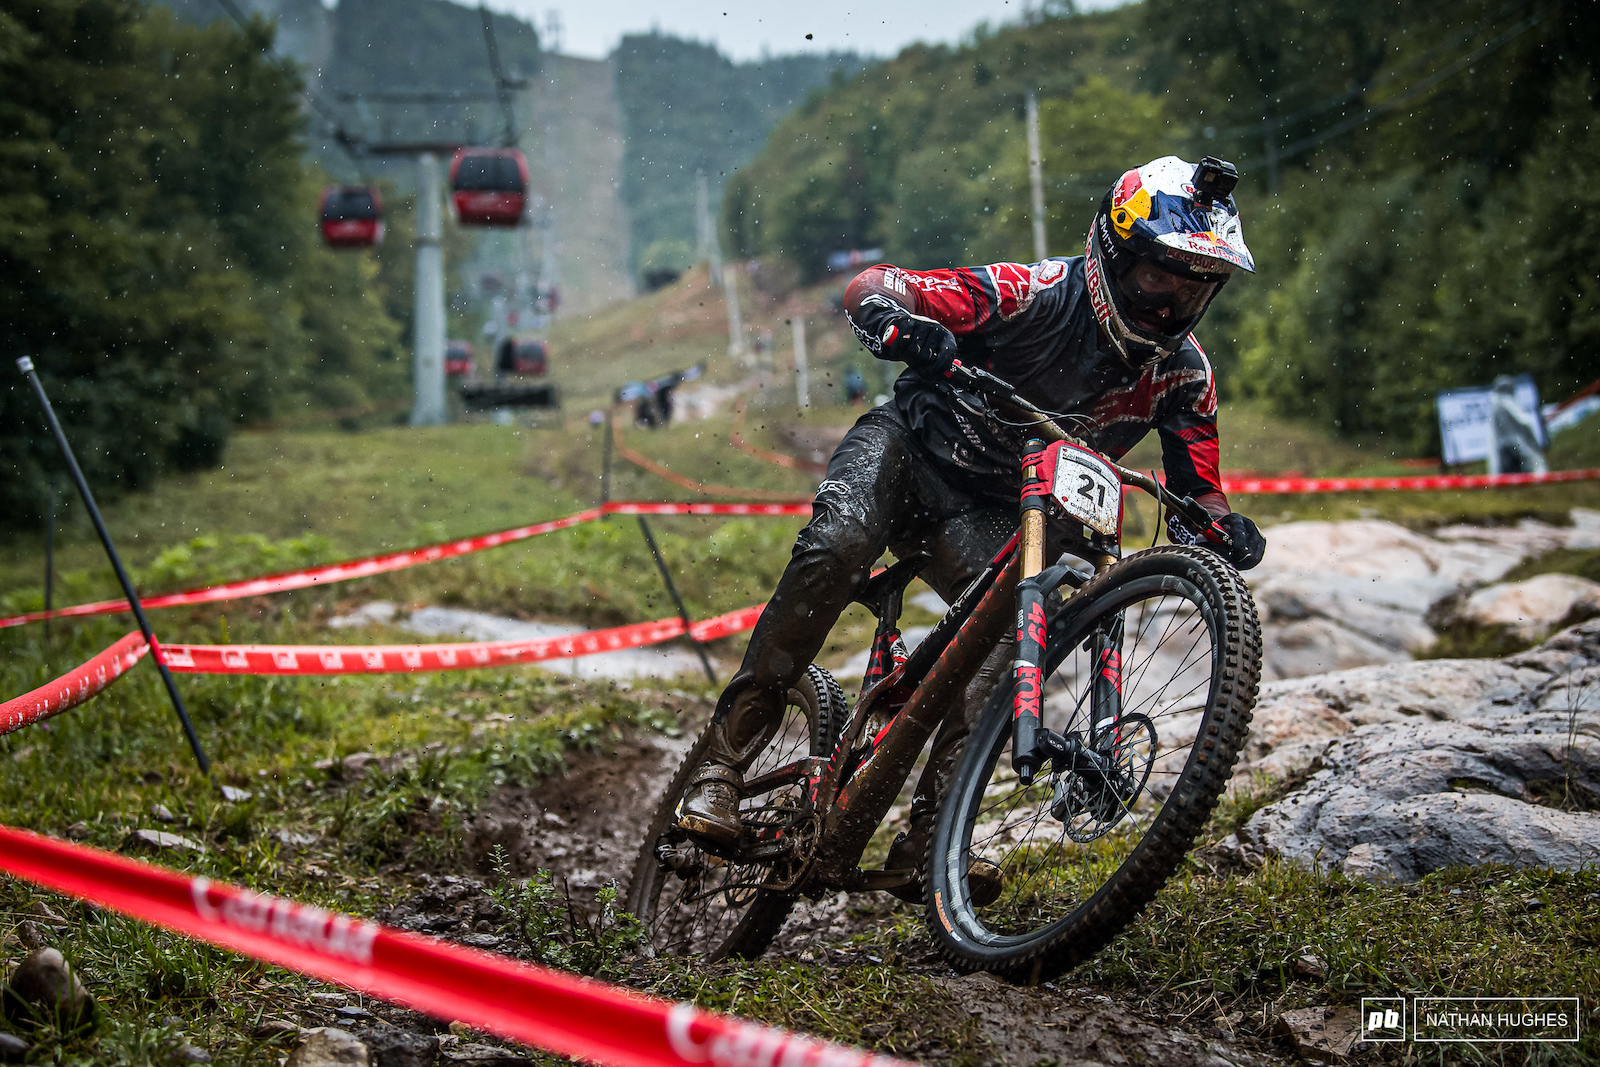 Pure nostalgia for Aaron Gwin who casually rode one of the greatest race runs in DH history in the similar conditions of 2017.